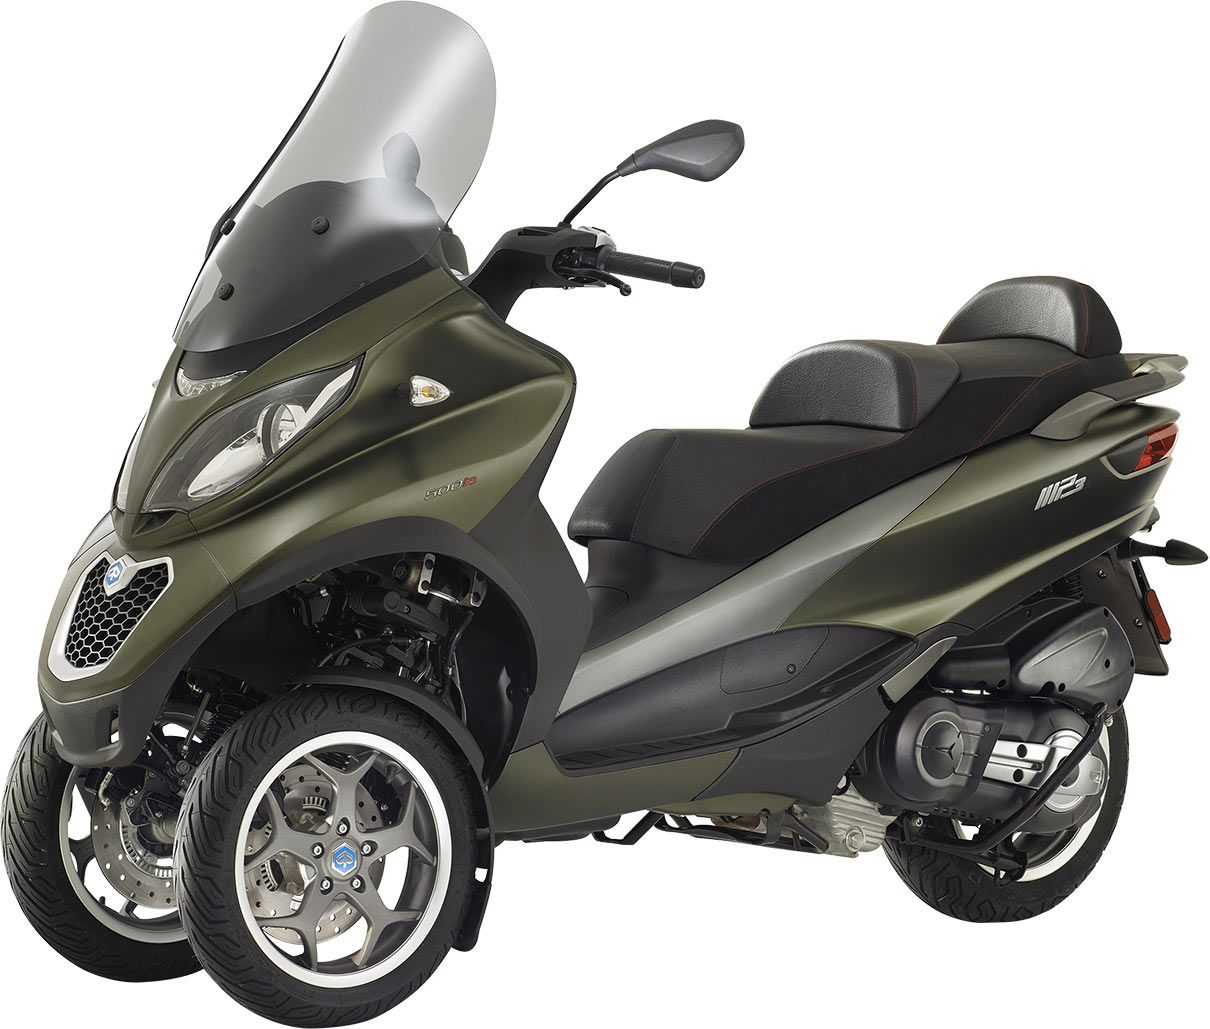 piaggio mp3 2017 le 3 roues passe l 39 euro 4 toys scooter 3 roues jantes scooters. Black Bedroom Furniture Sets. Home Design Ideas